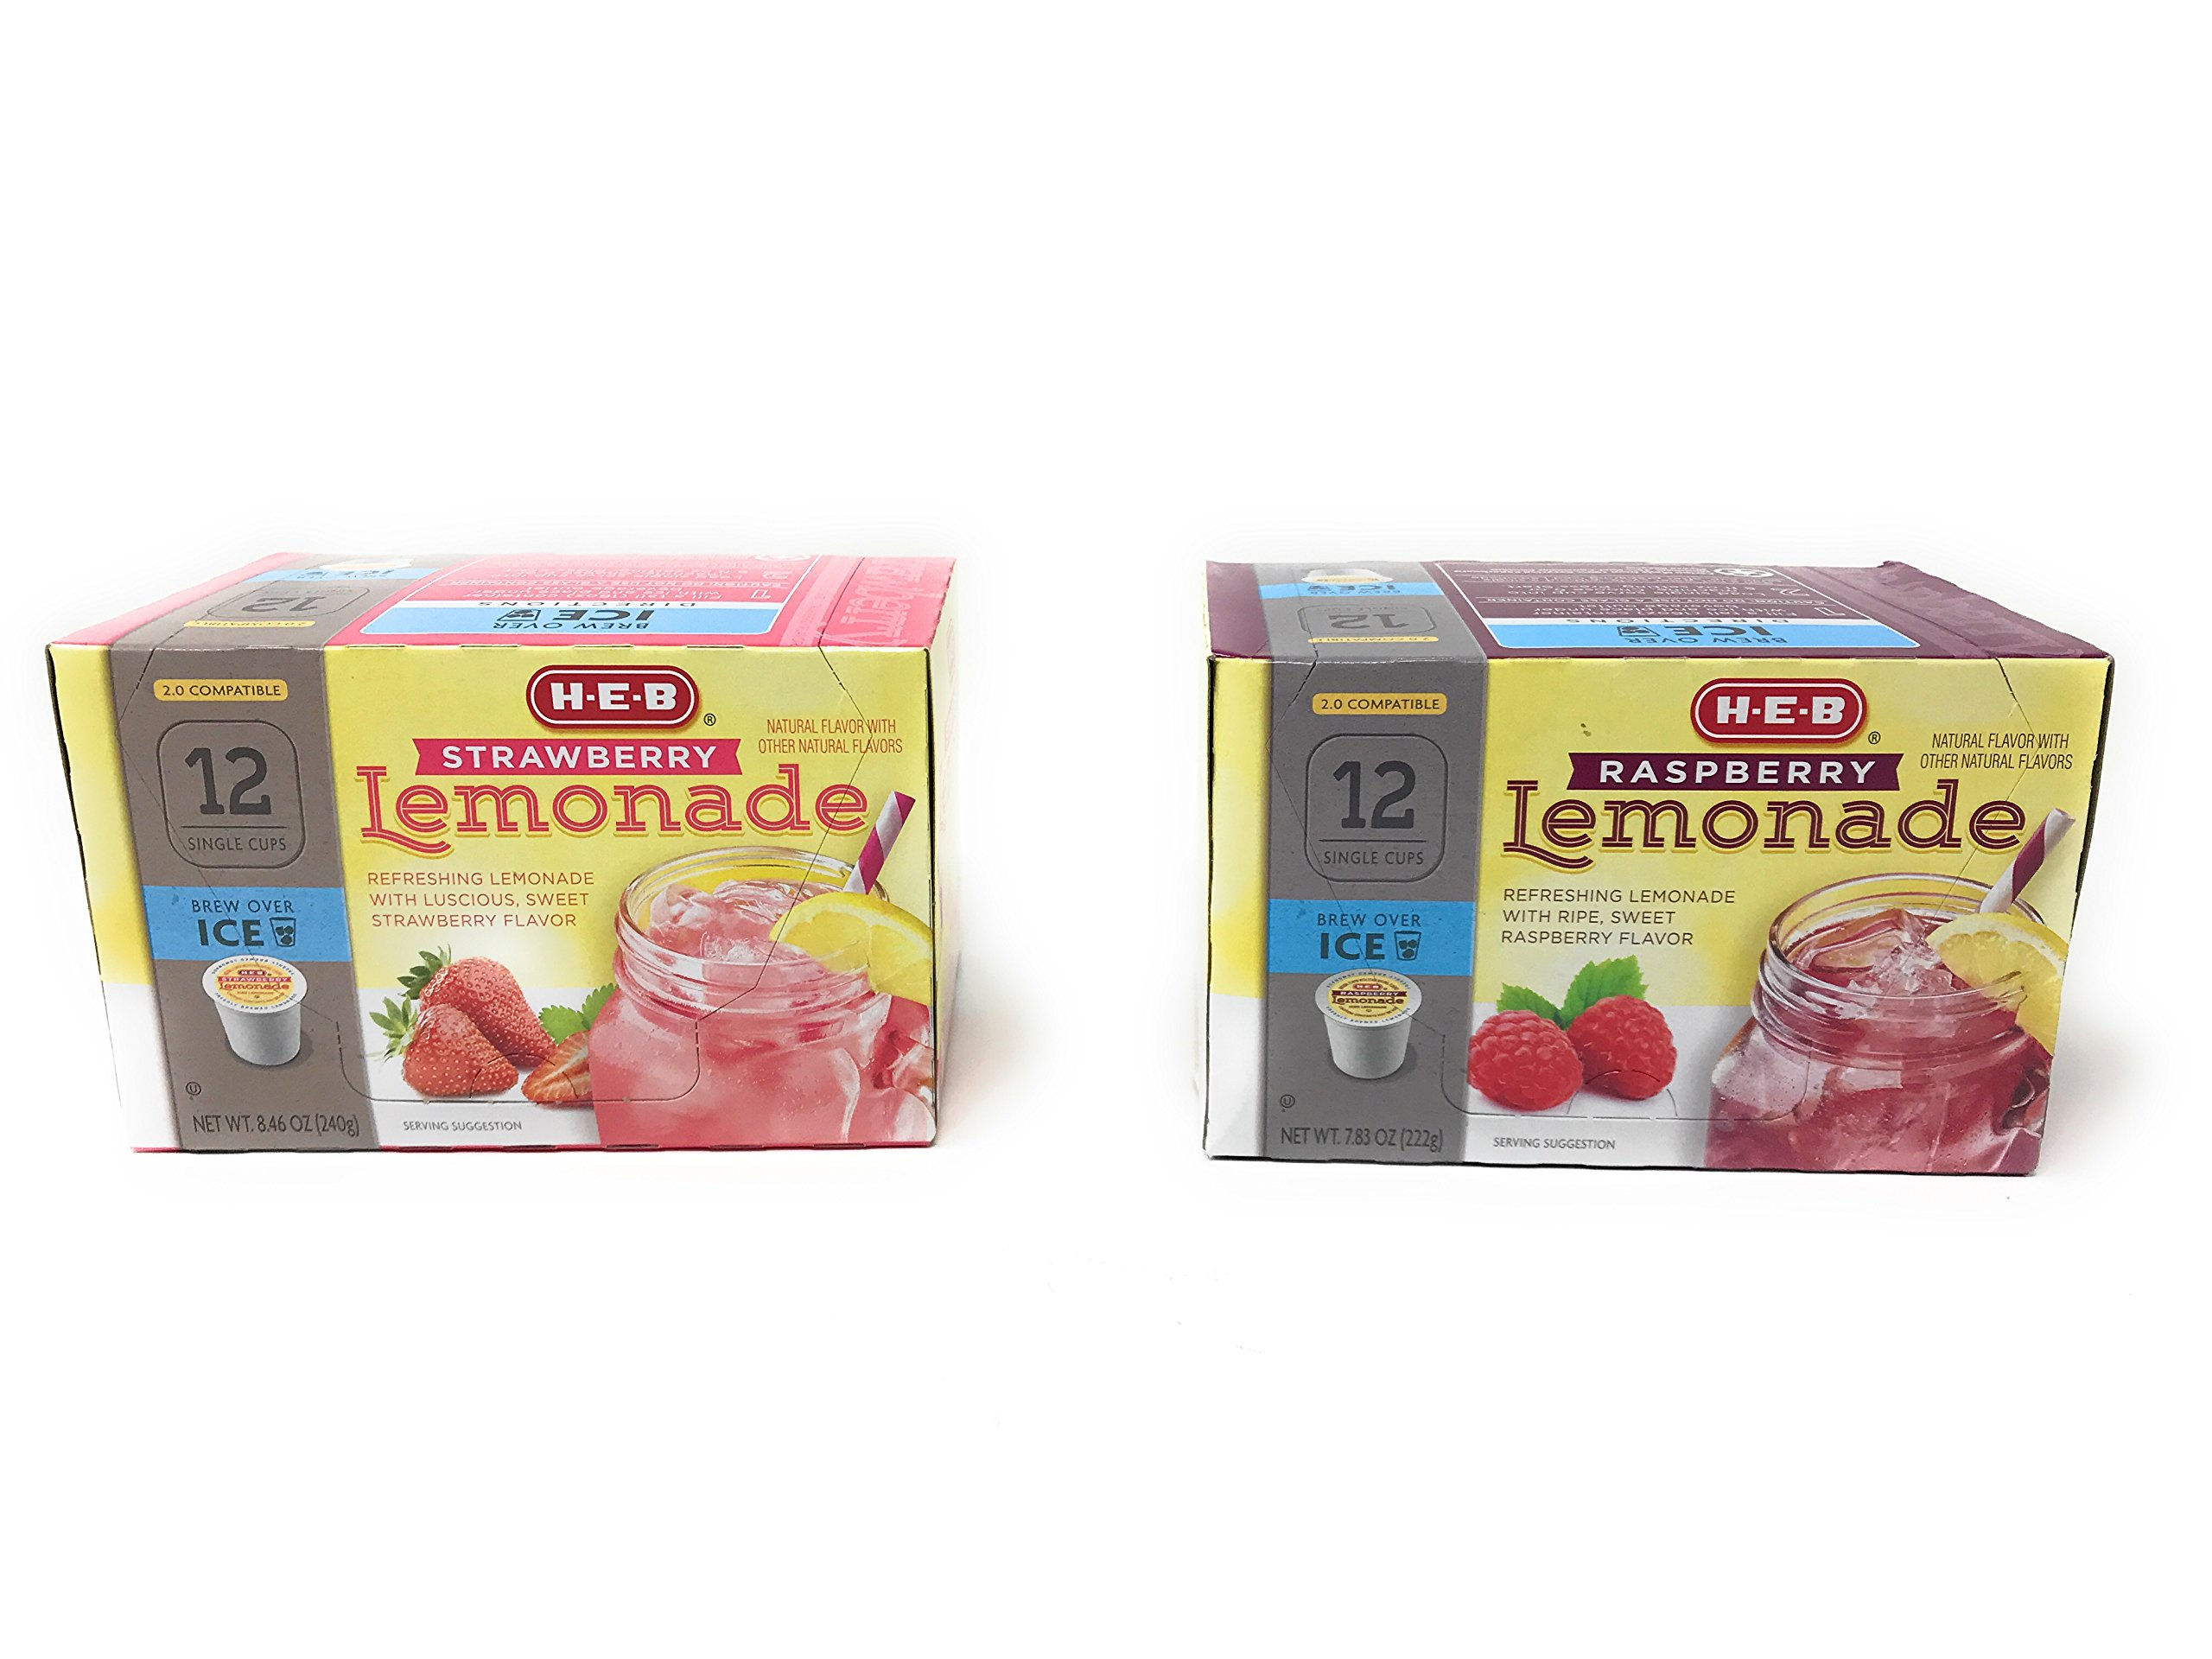 H.E.B Strawberry and Raspberry Lemonade k-cup; 2.0 Compatible - 2 Boxes Variety Pack 12 ct in Each Box